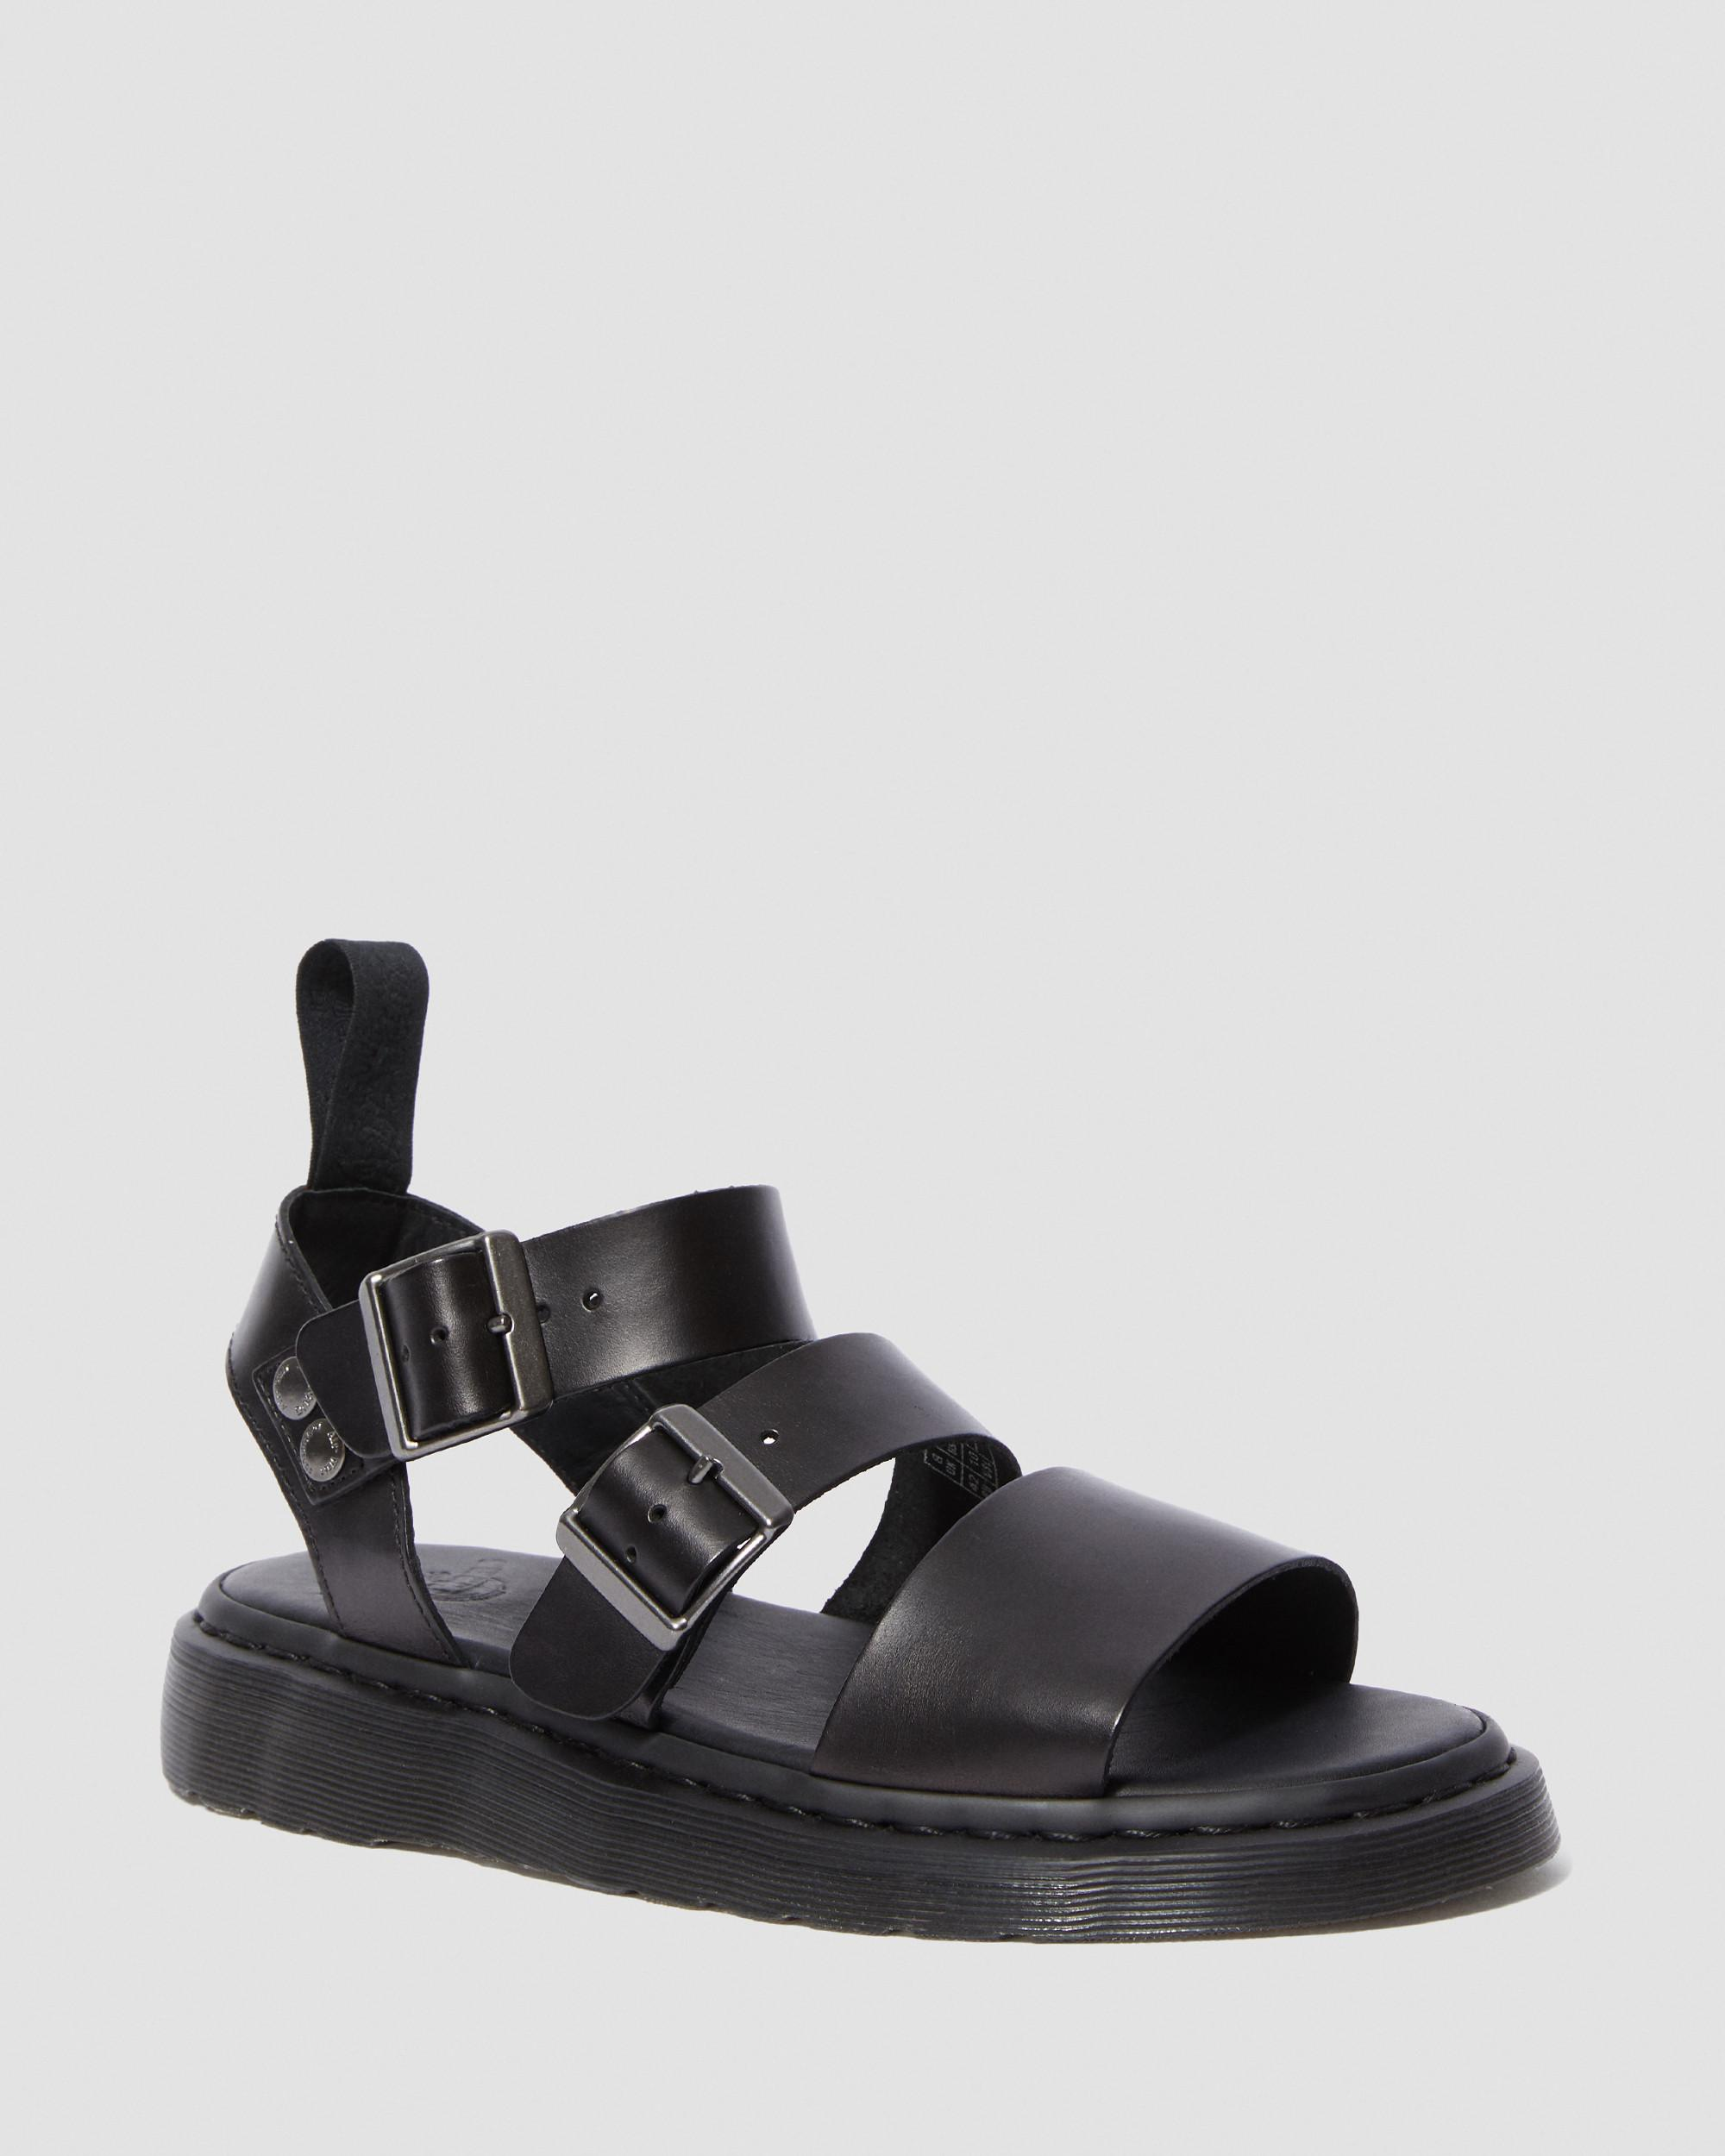 Dr. Martens Blaire Hydro Leather Gladiator Sandals for Women